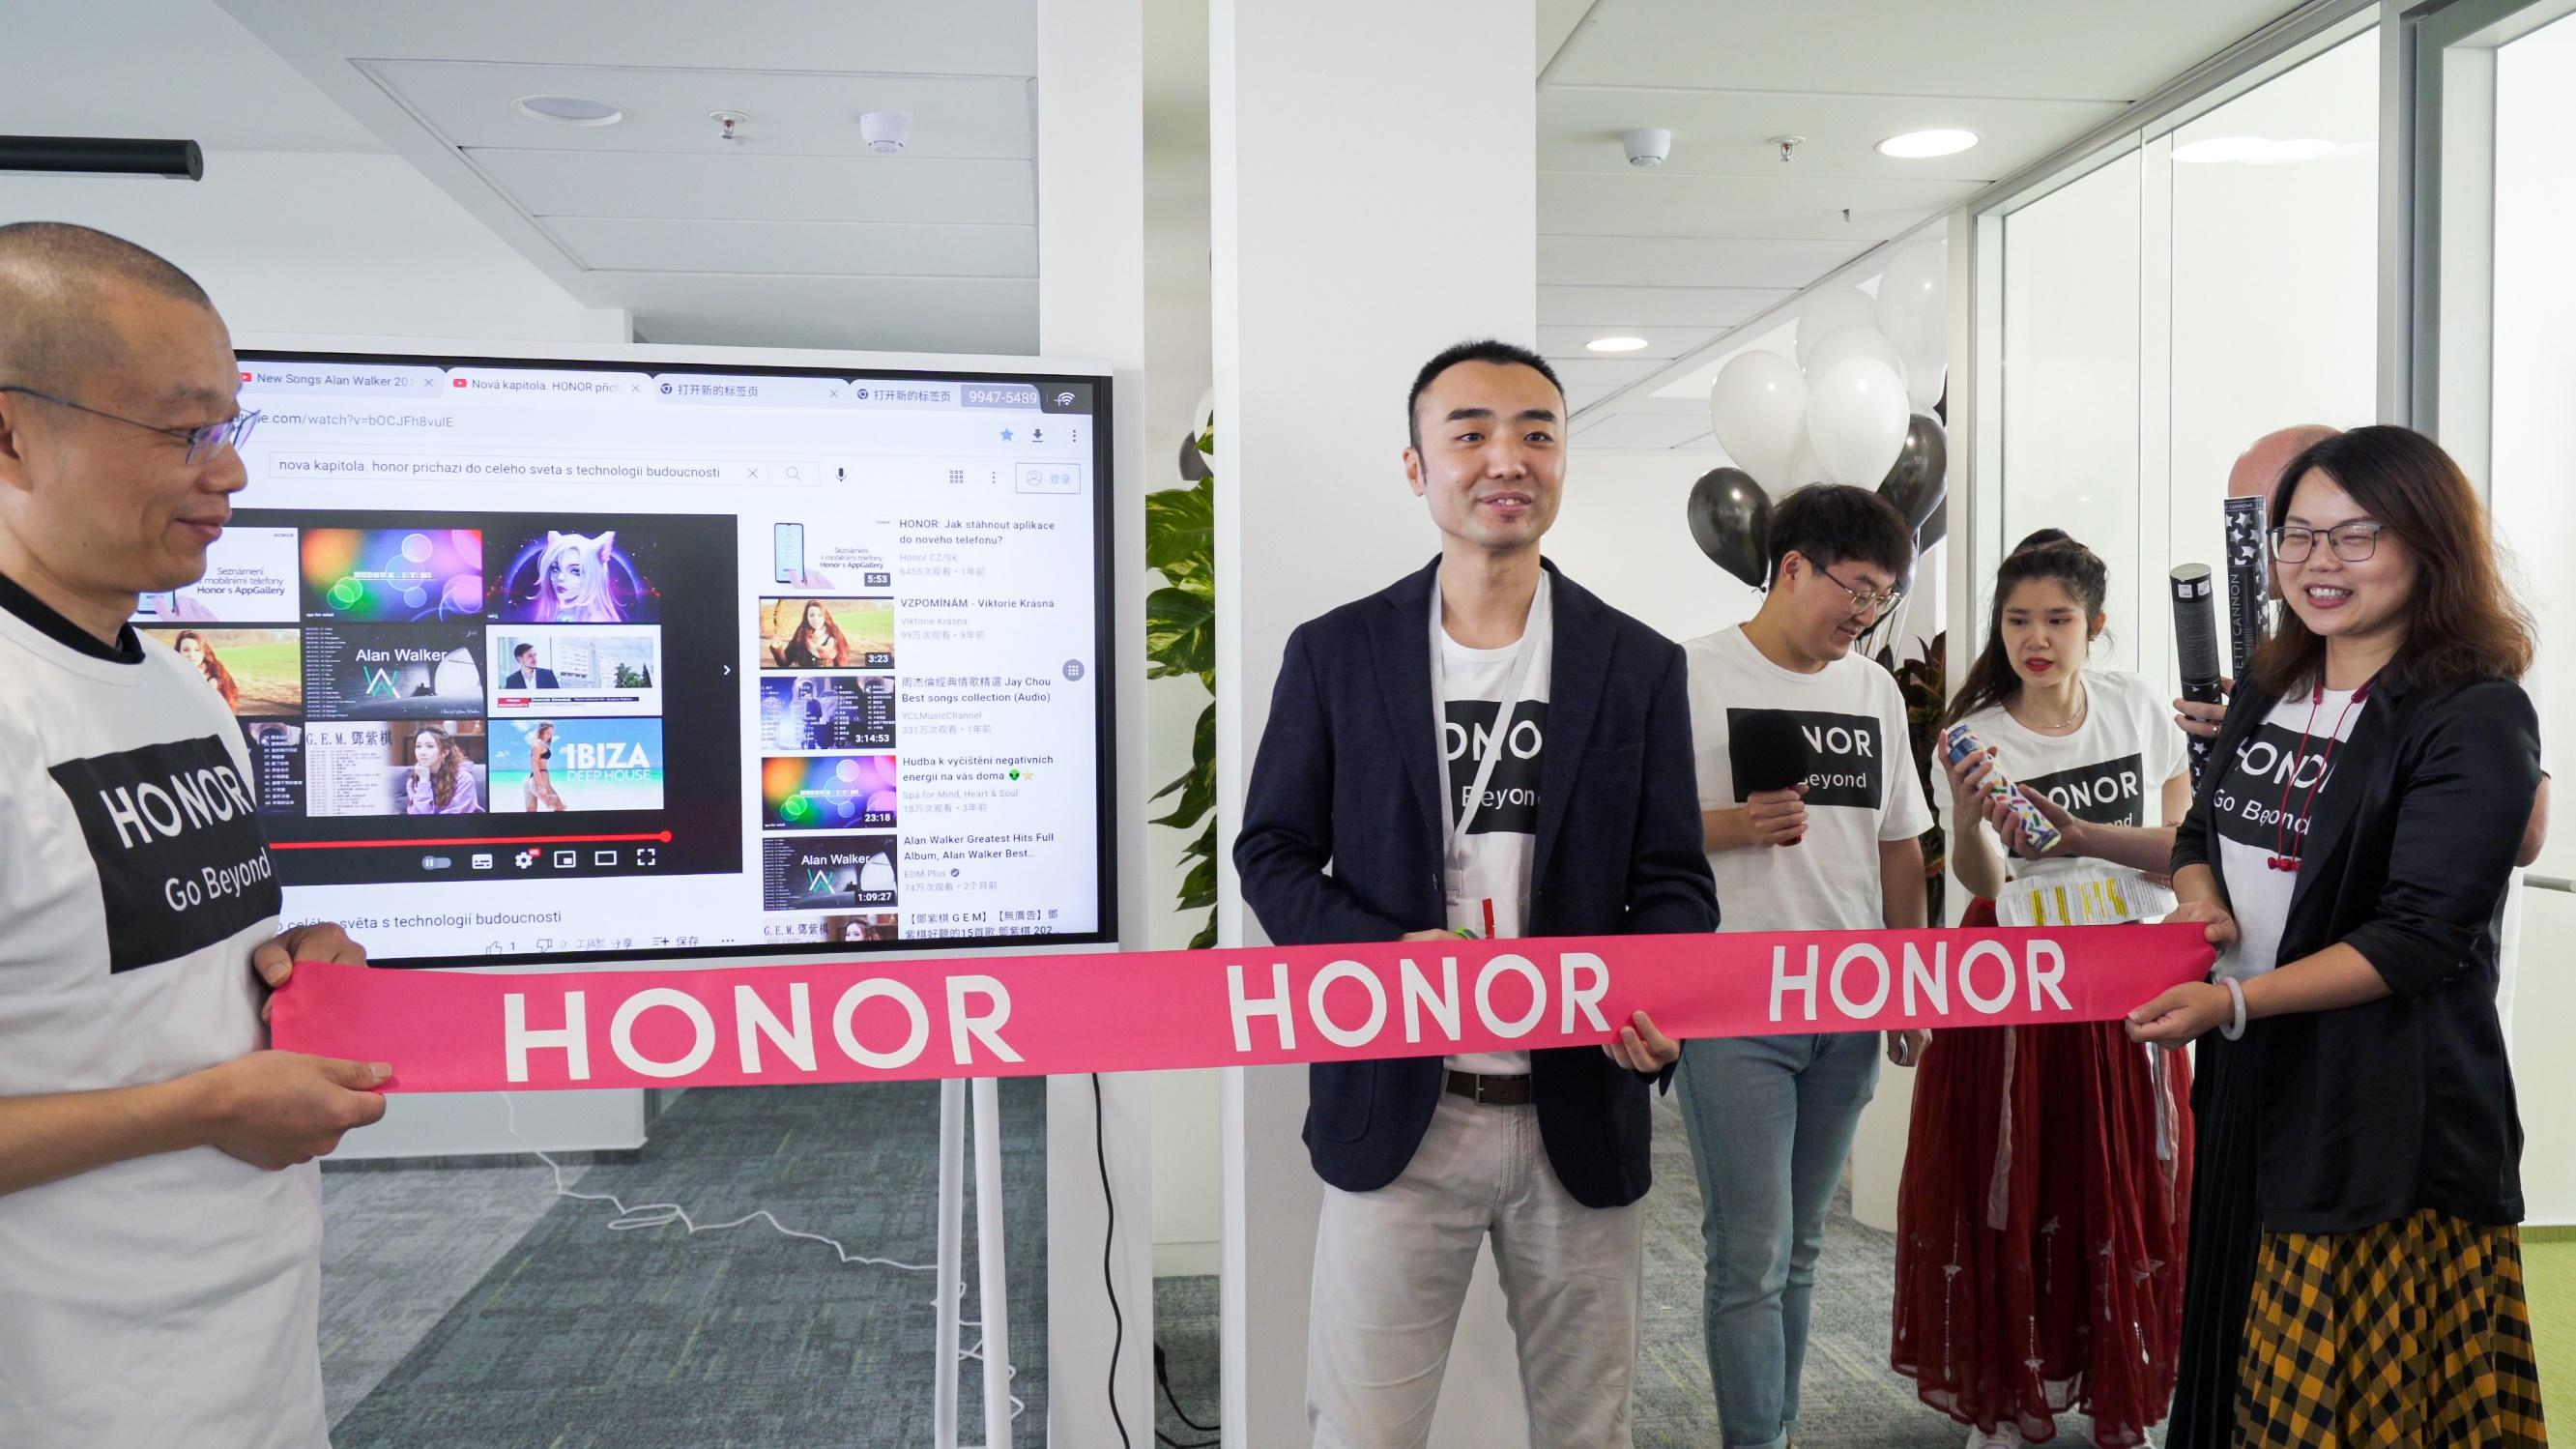 A group of people standing in front of a screen  Description automatically generated with medium confidence